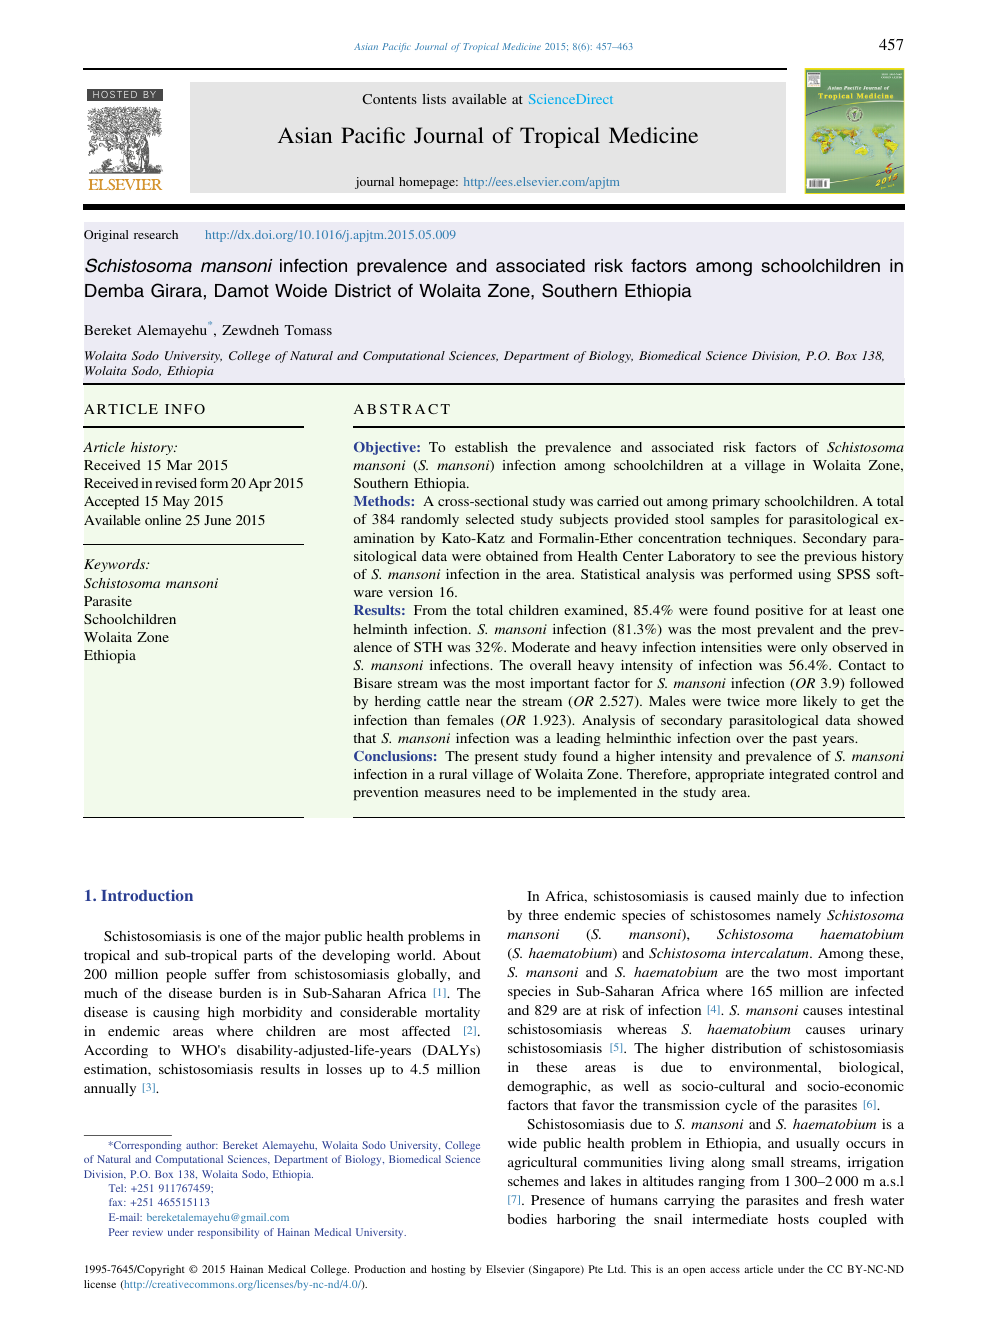 Schistosoma mansoni infection prevalence and associated risk